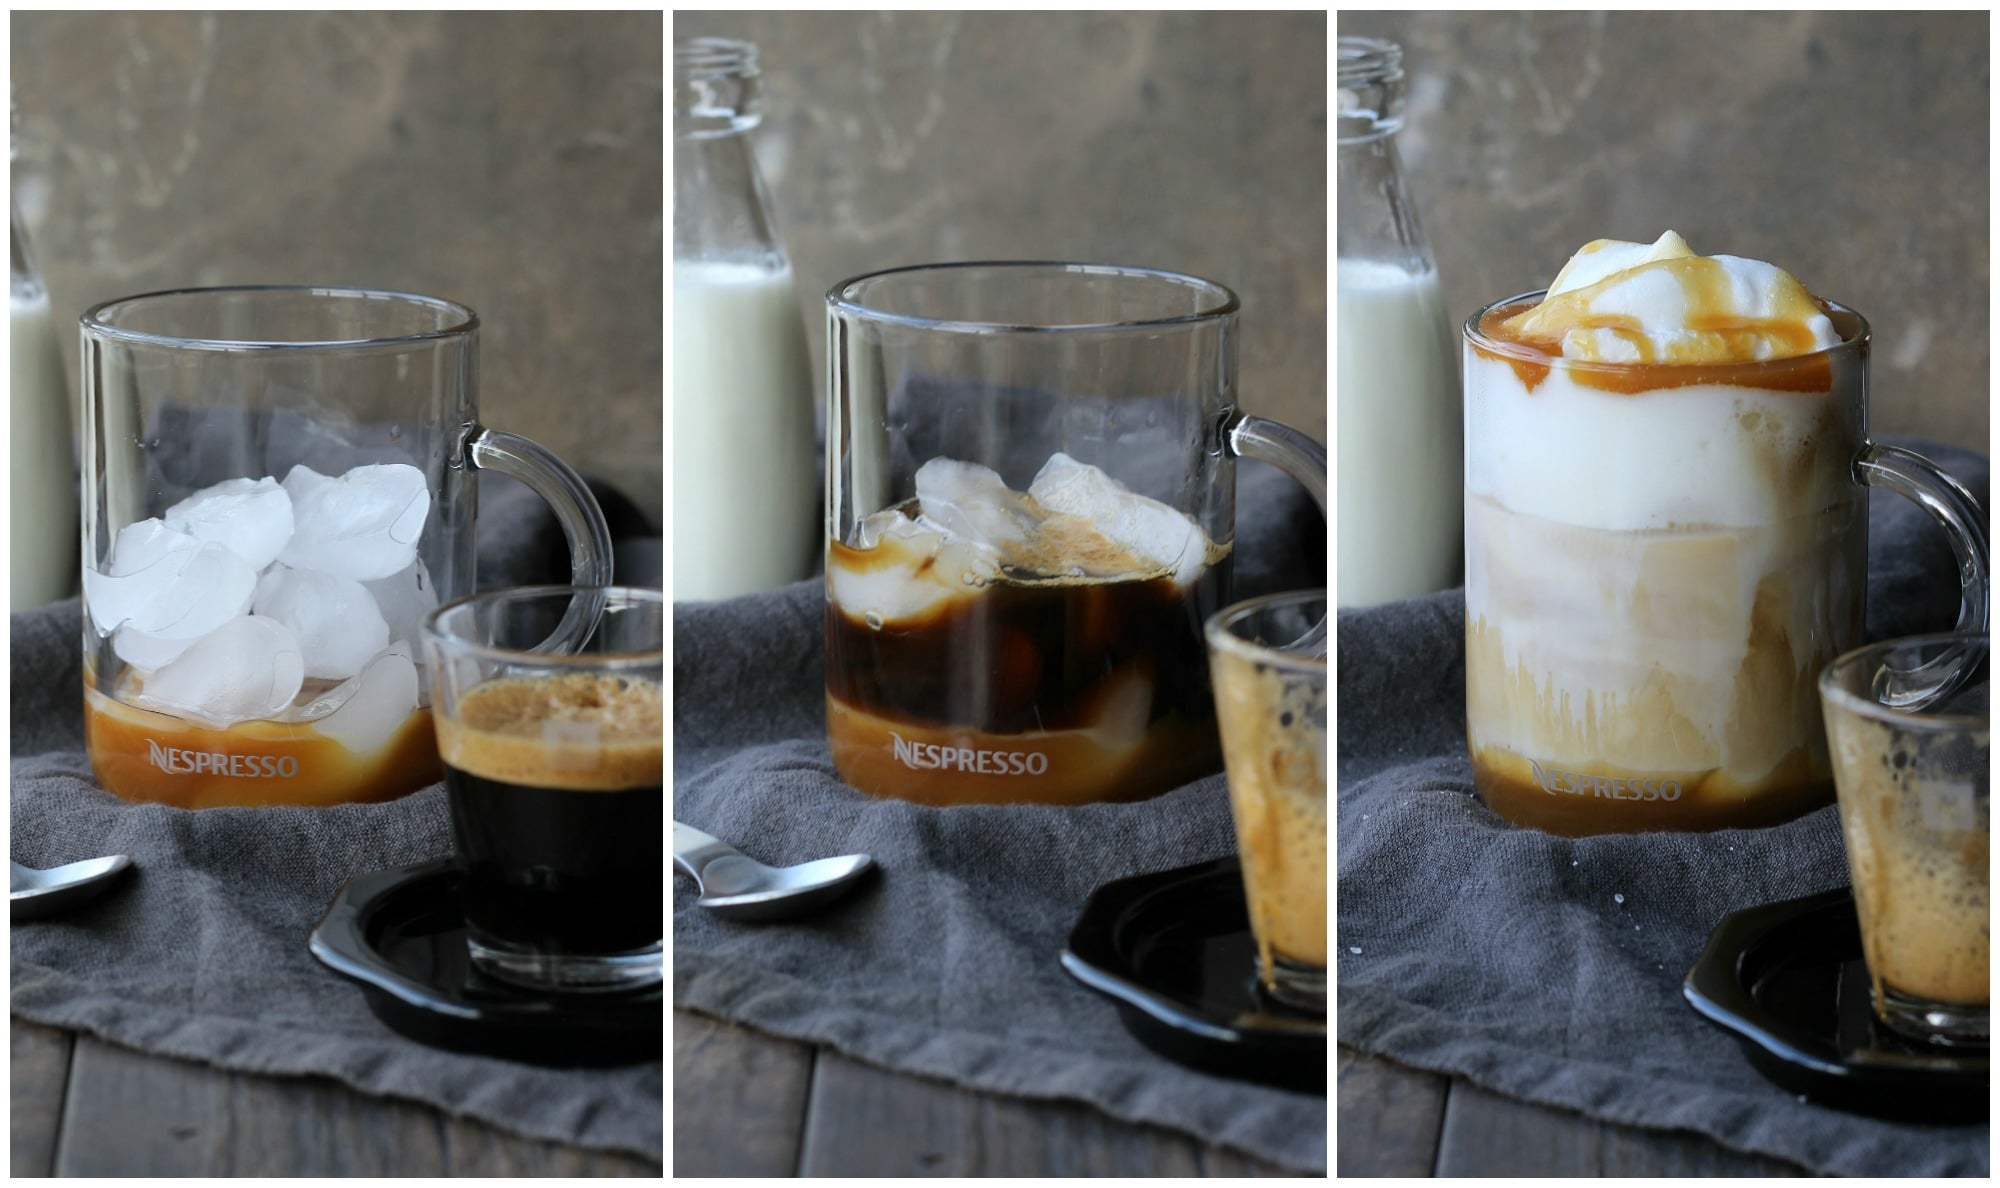 Iced Caramel Macchiato shown in a clear glass cup with caramel sauce and ice cubes then added with espresso, milk froth and more caramel sauce